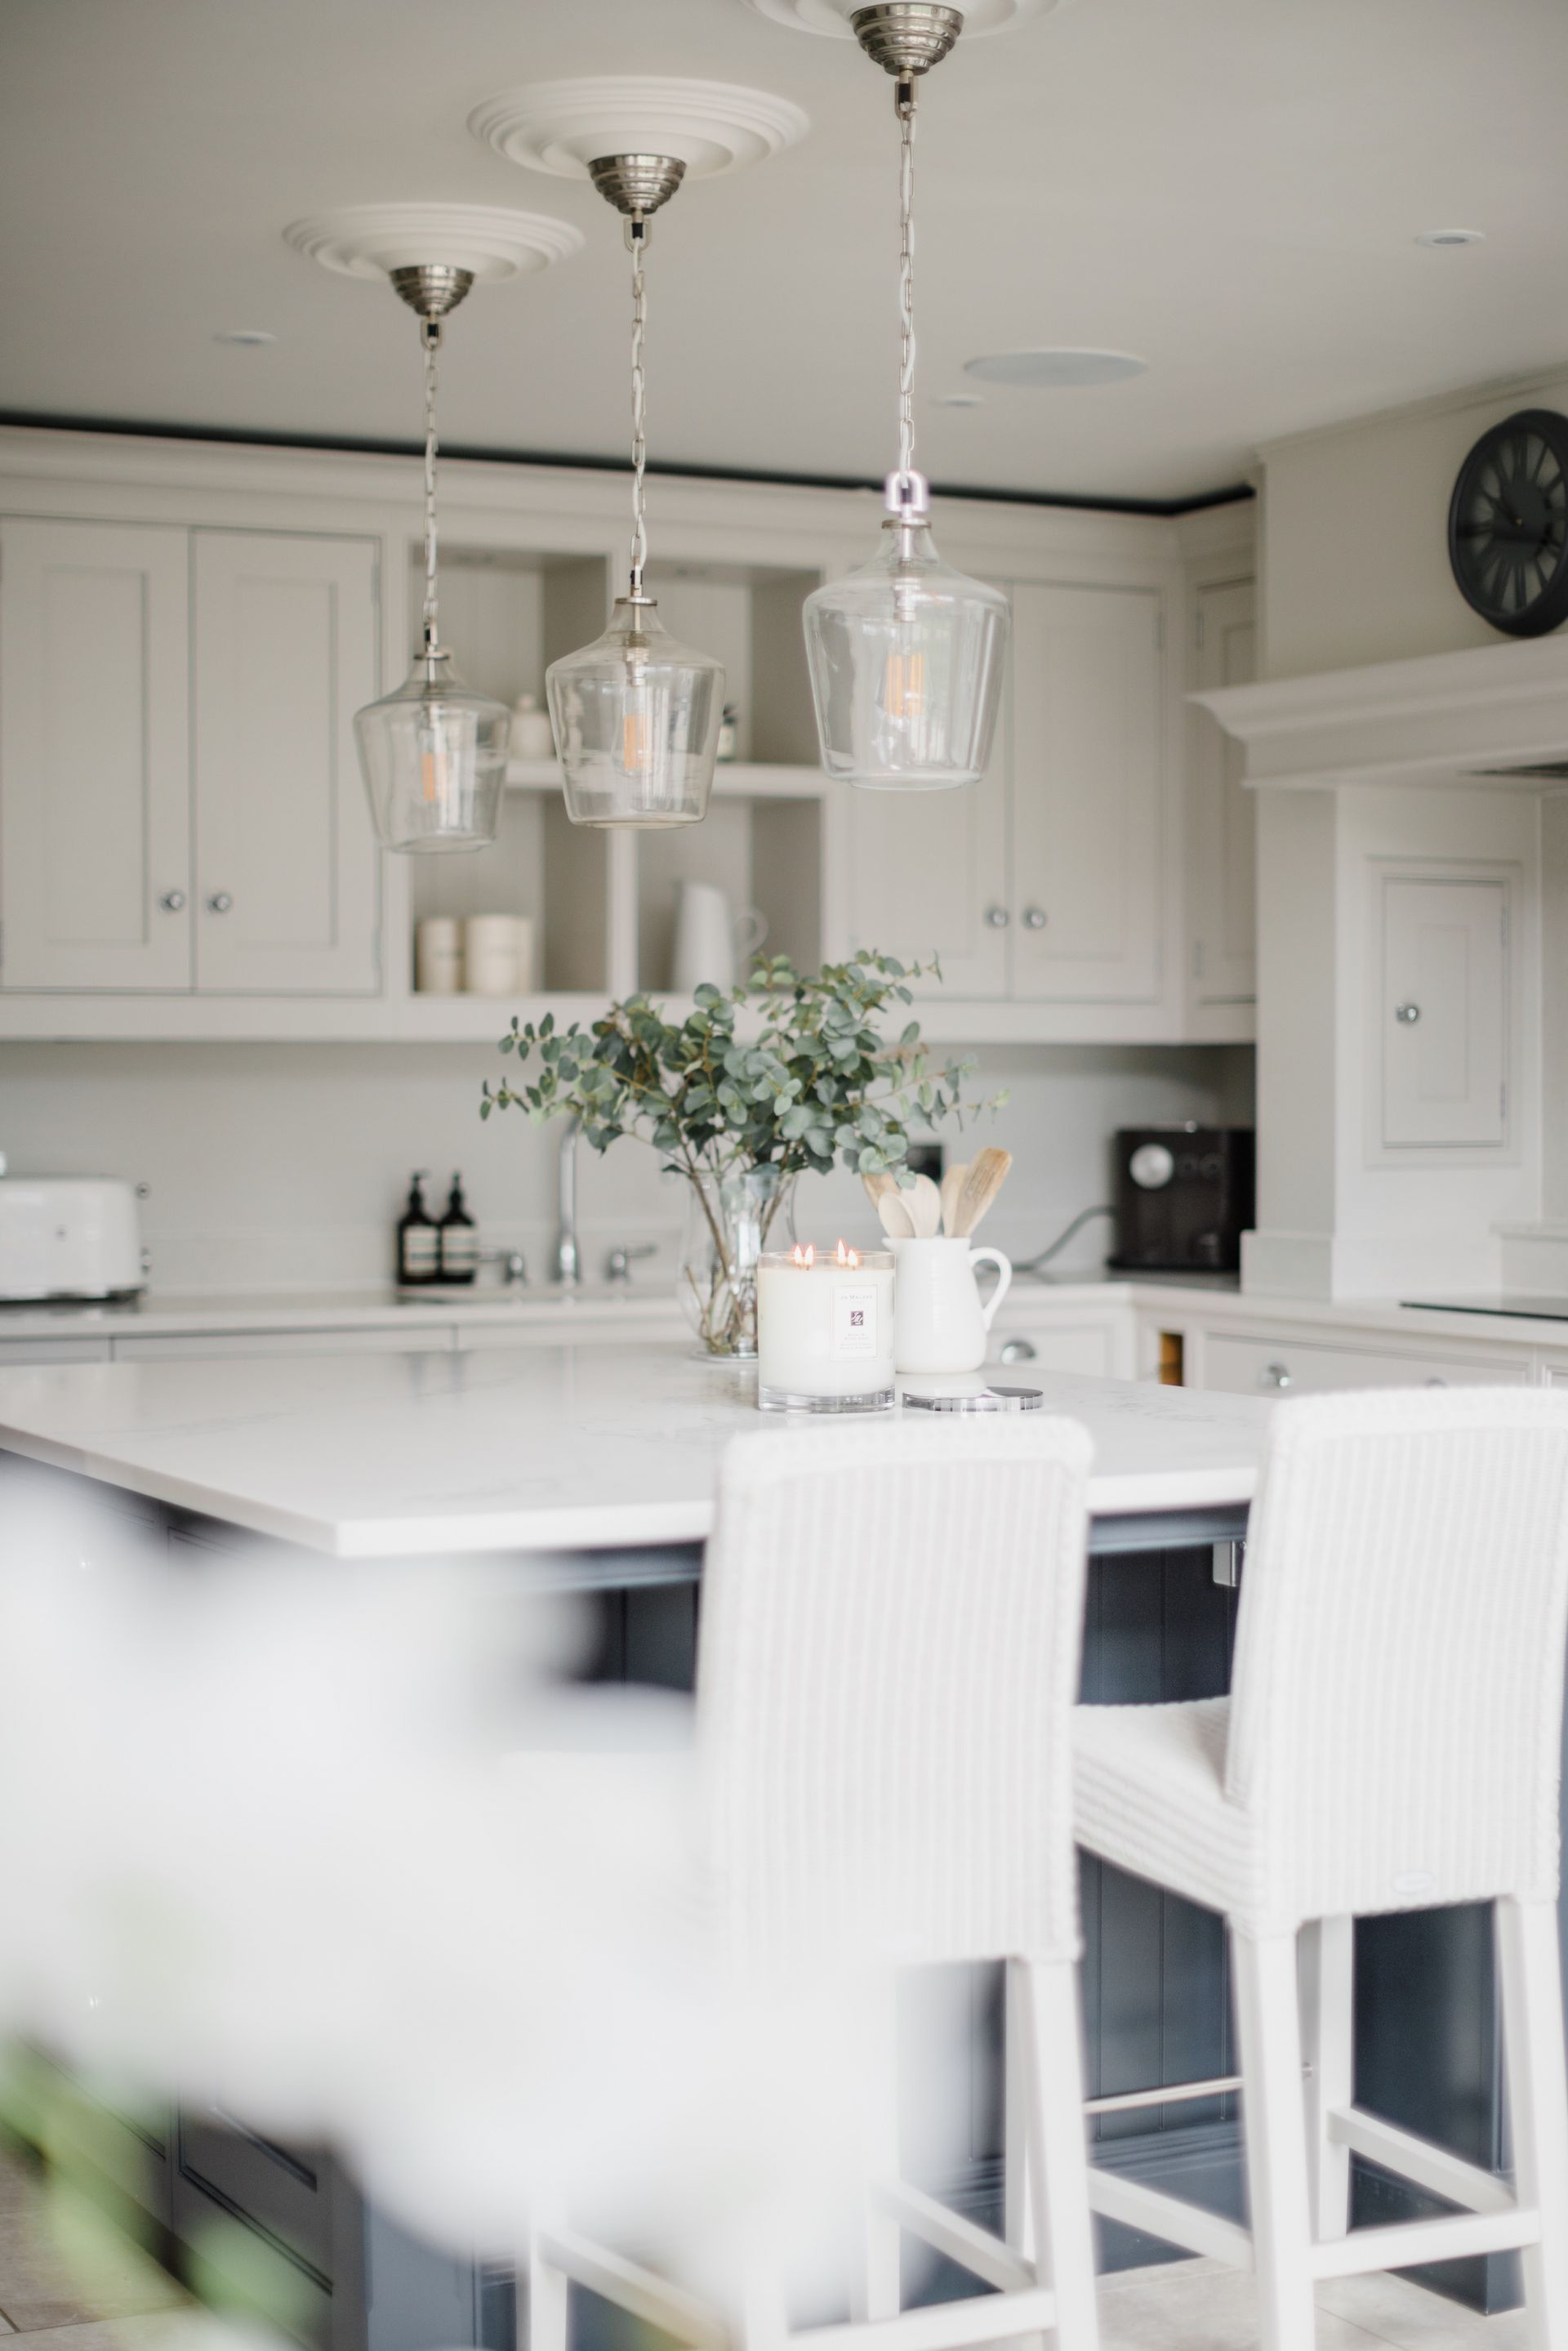 How To Make Your Home Spring Perfect By Lydia Elise Millen Lydiamillen Springd How To Make Your Home In 2020 Kitchen Design Home Decor Kitchen Lydia Elise Millen